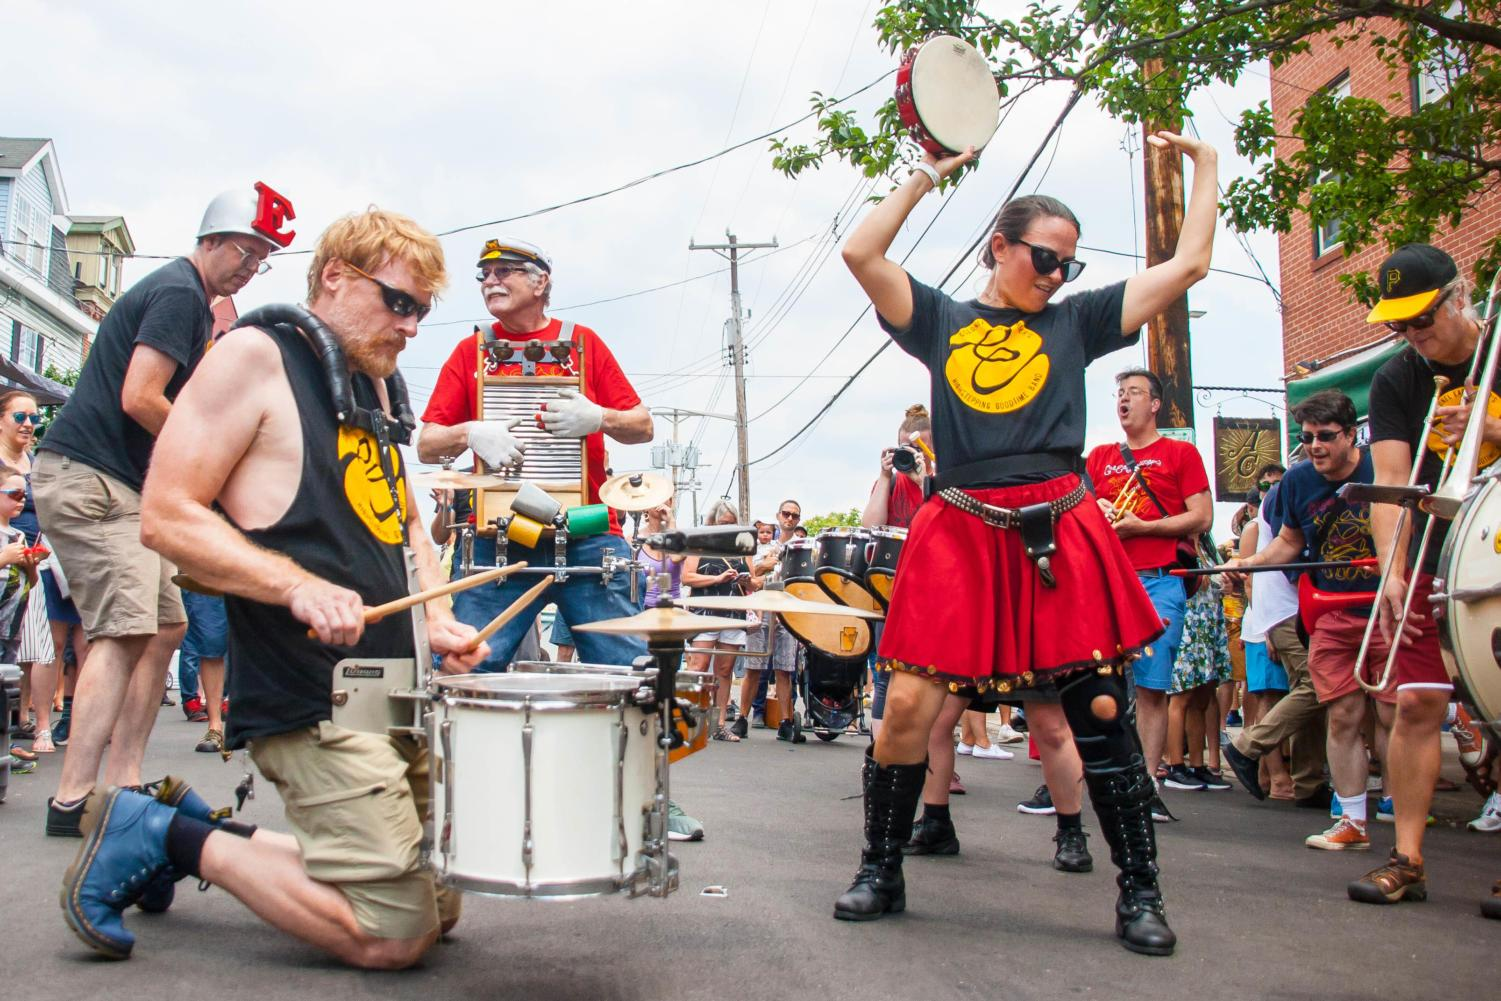 Colonel Eagleburger's Highstepping Goodtime Band stops the crowd with their high energy performance.